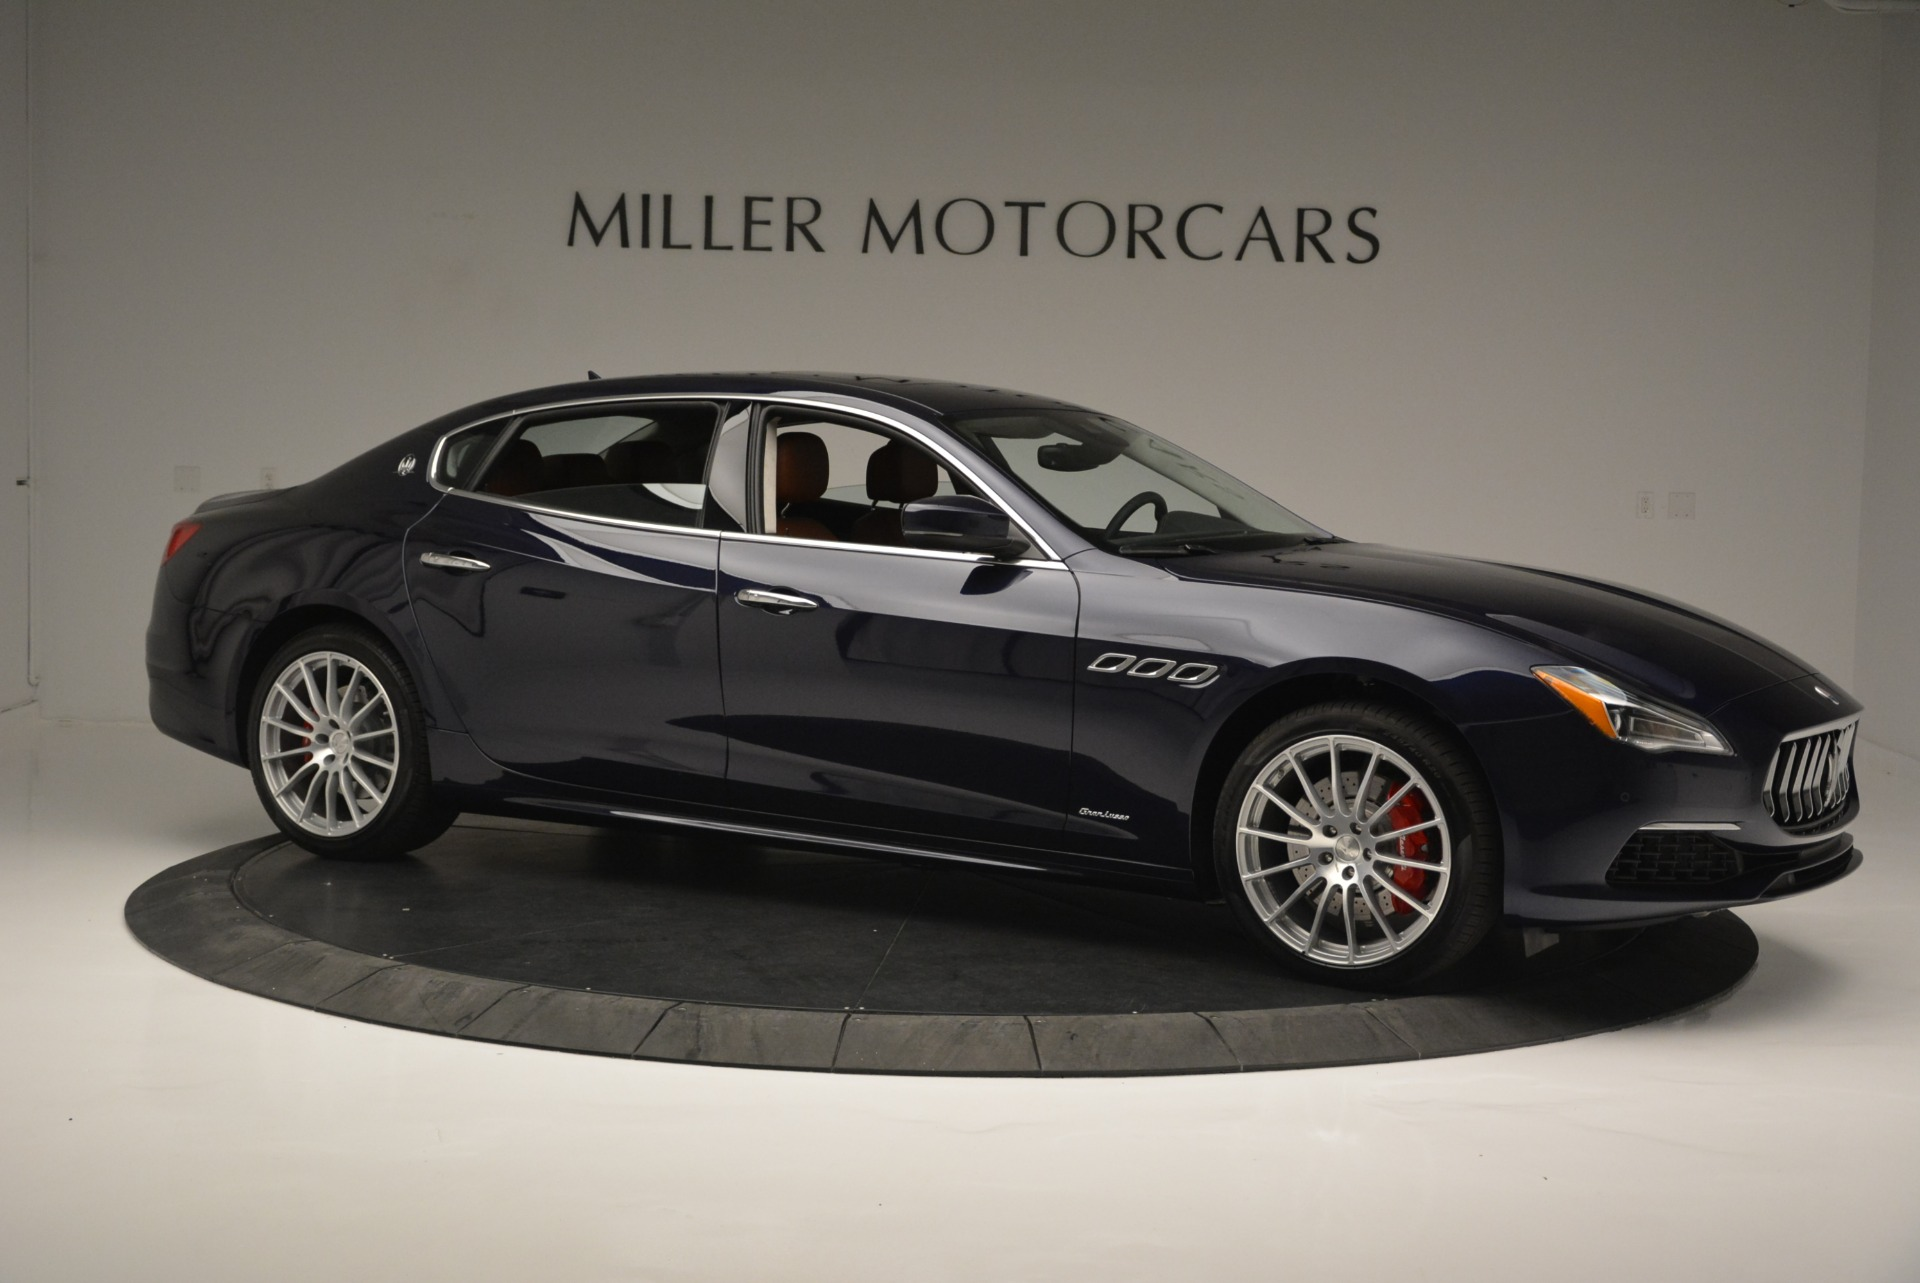 New 2018 Maserati Quattroporte S Q4 GranLusso For Sale In Greenwich, CT 1859_p11